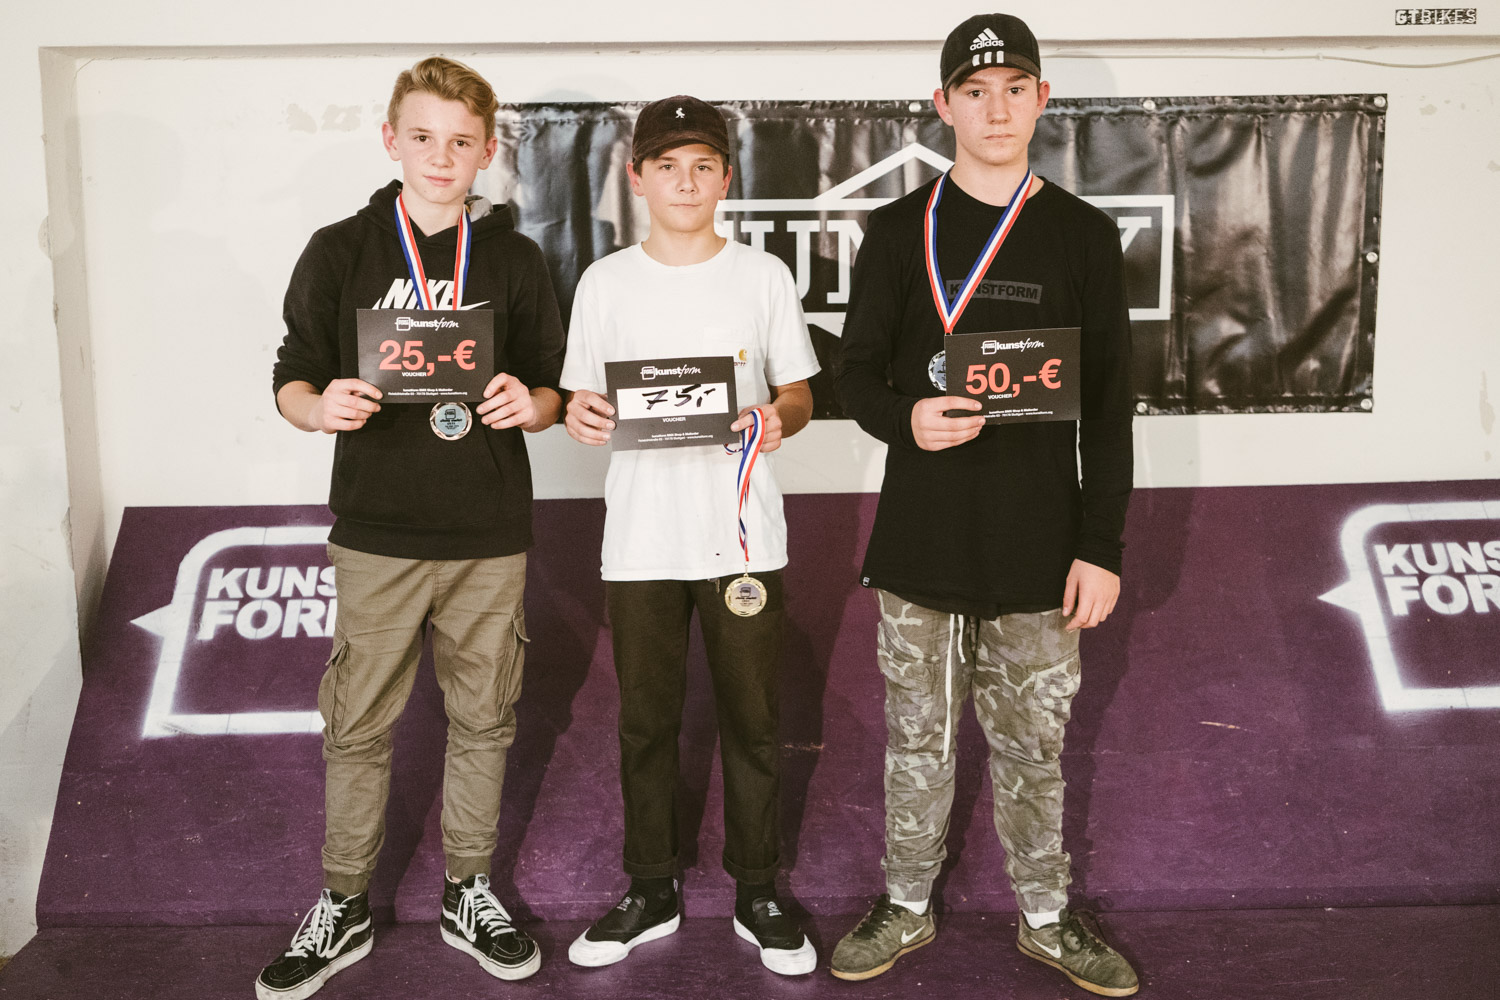 Die Gewinner des Kids Best Trick Contests: 1. Noah Matella, 2. Nikola Drugcevic, 3. Alex Olberg